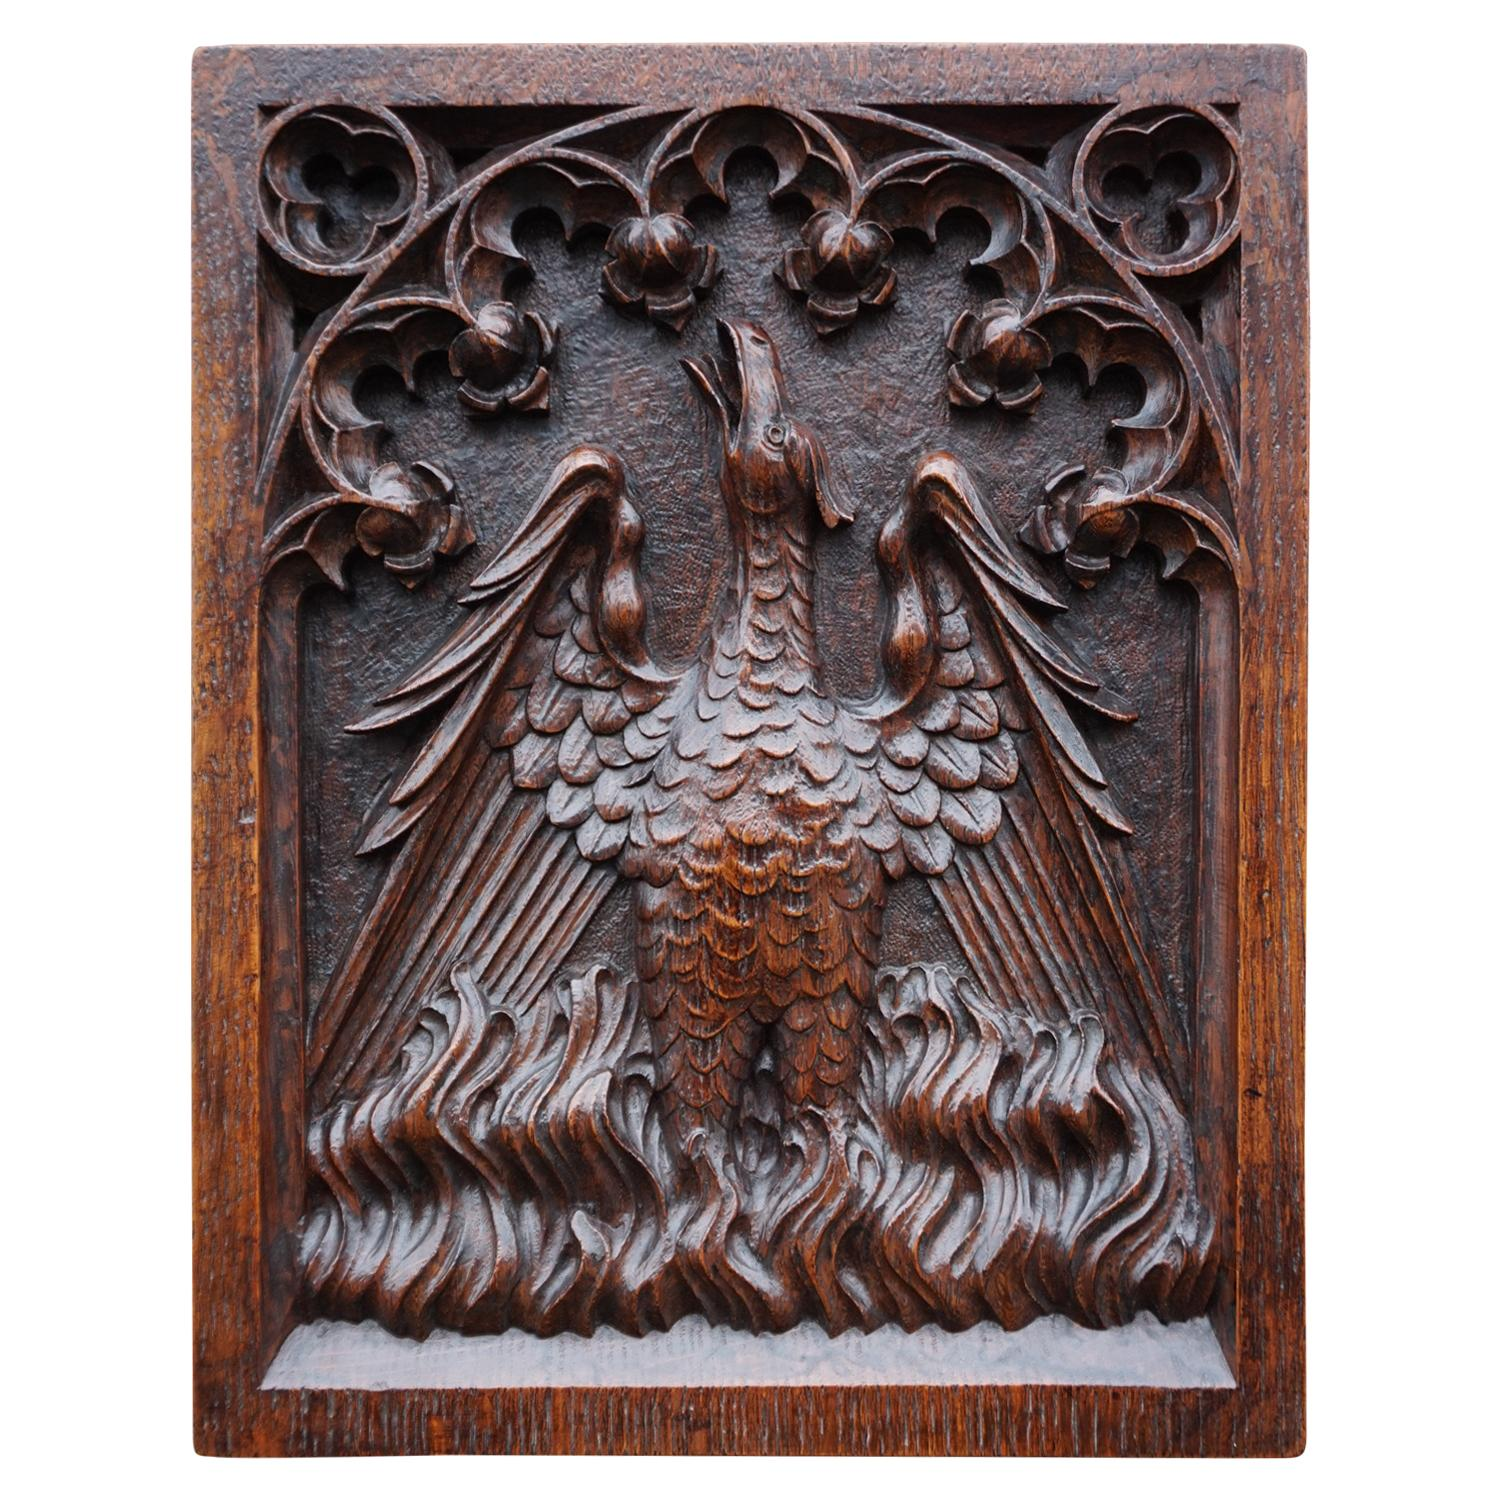 Antique Hand Carved Oak Gothic Art Panel of an Eagle as Symbol of Saint John